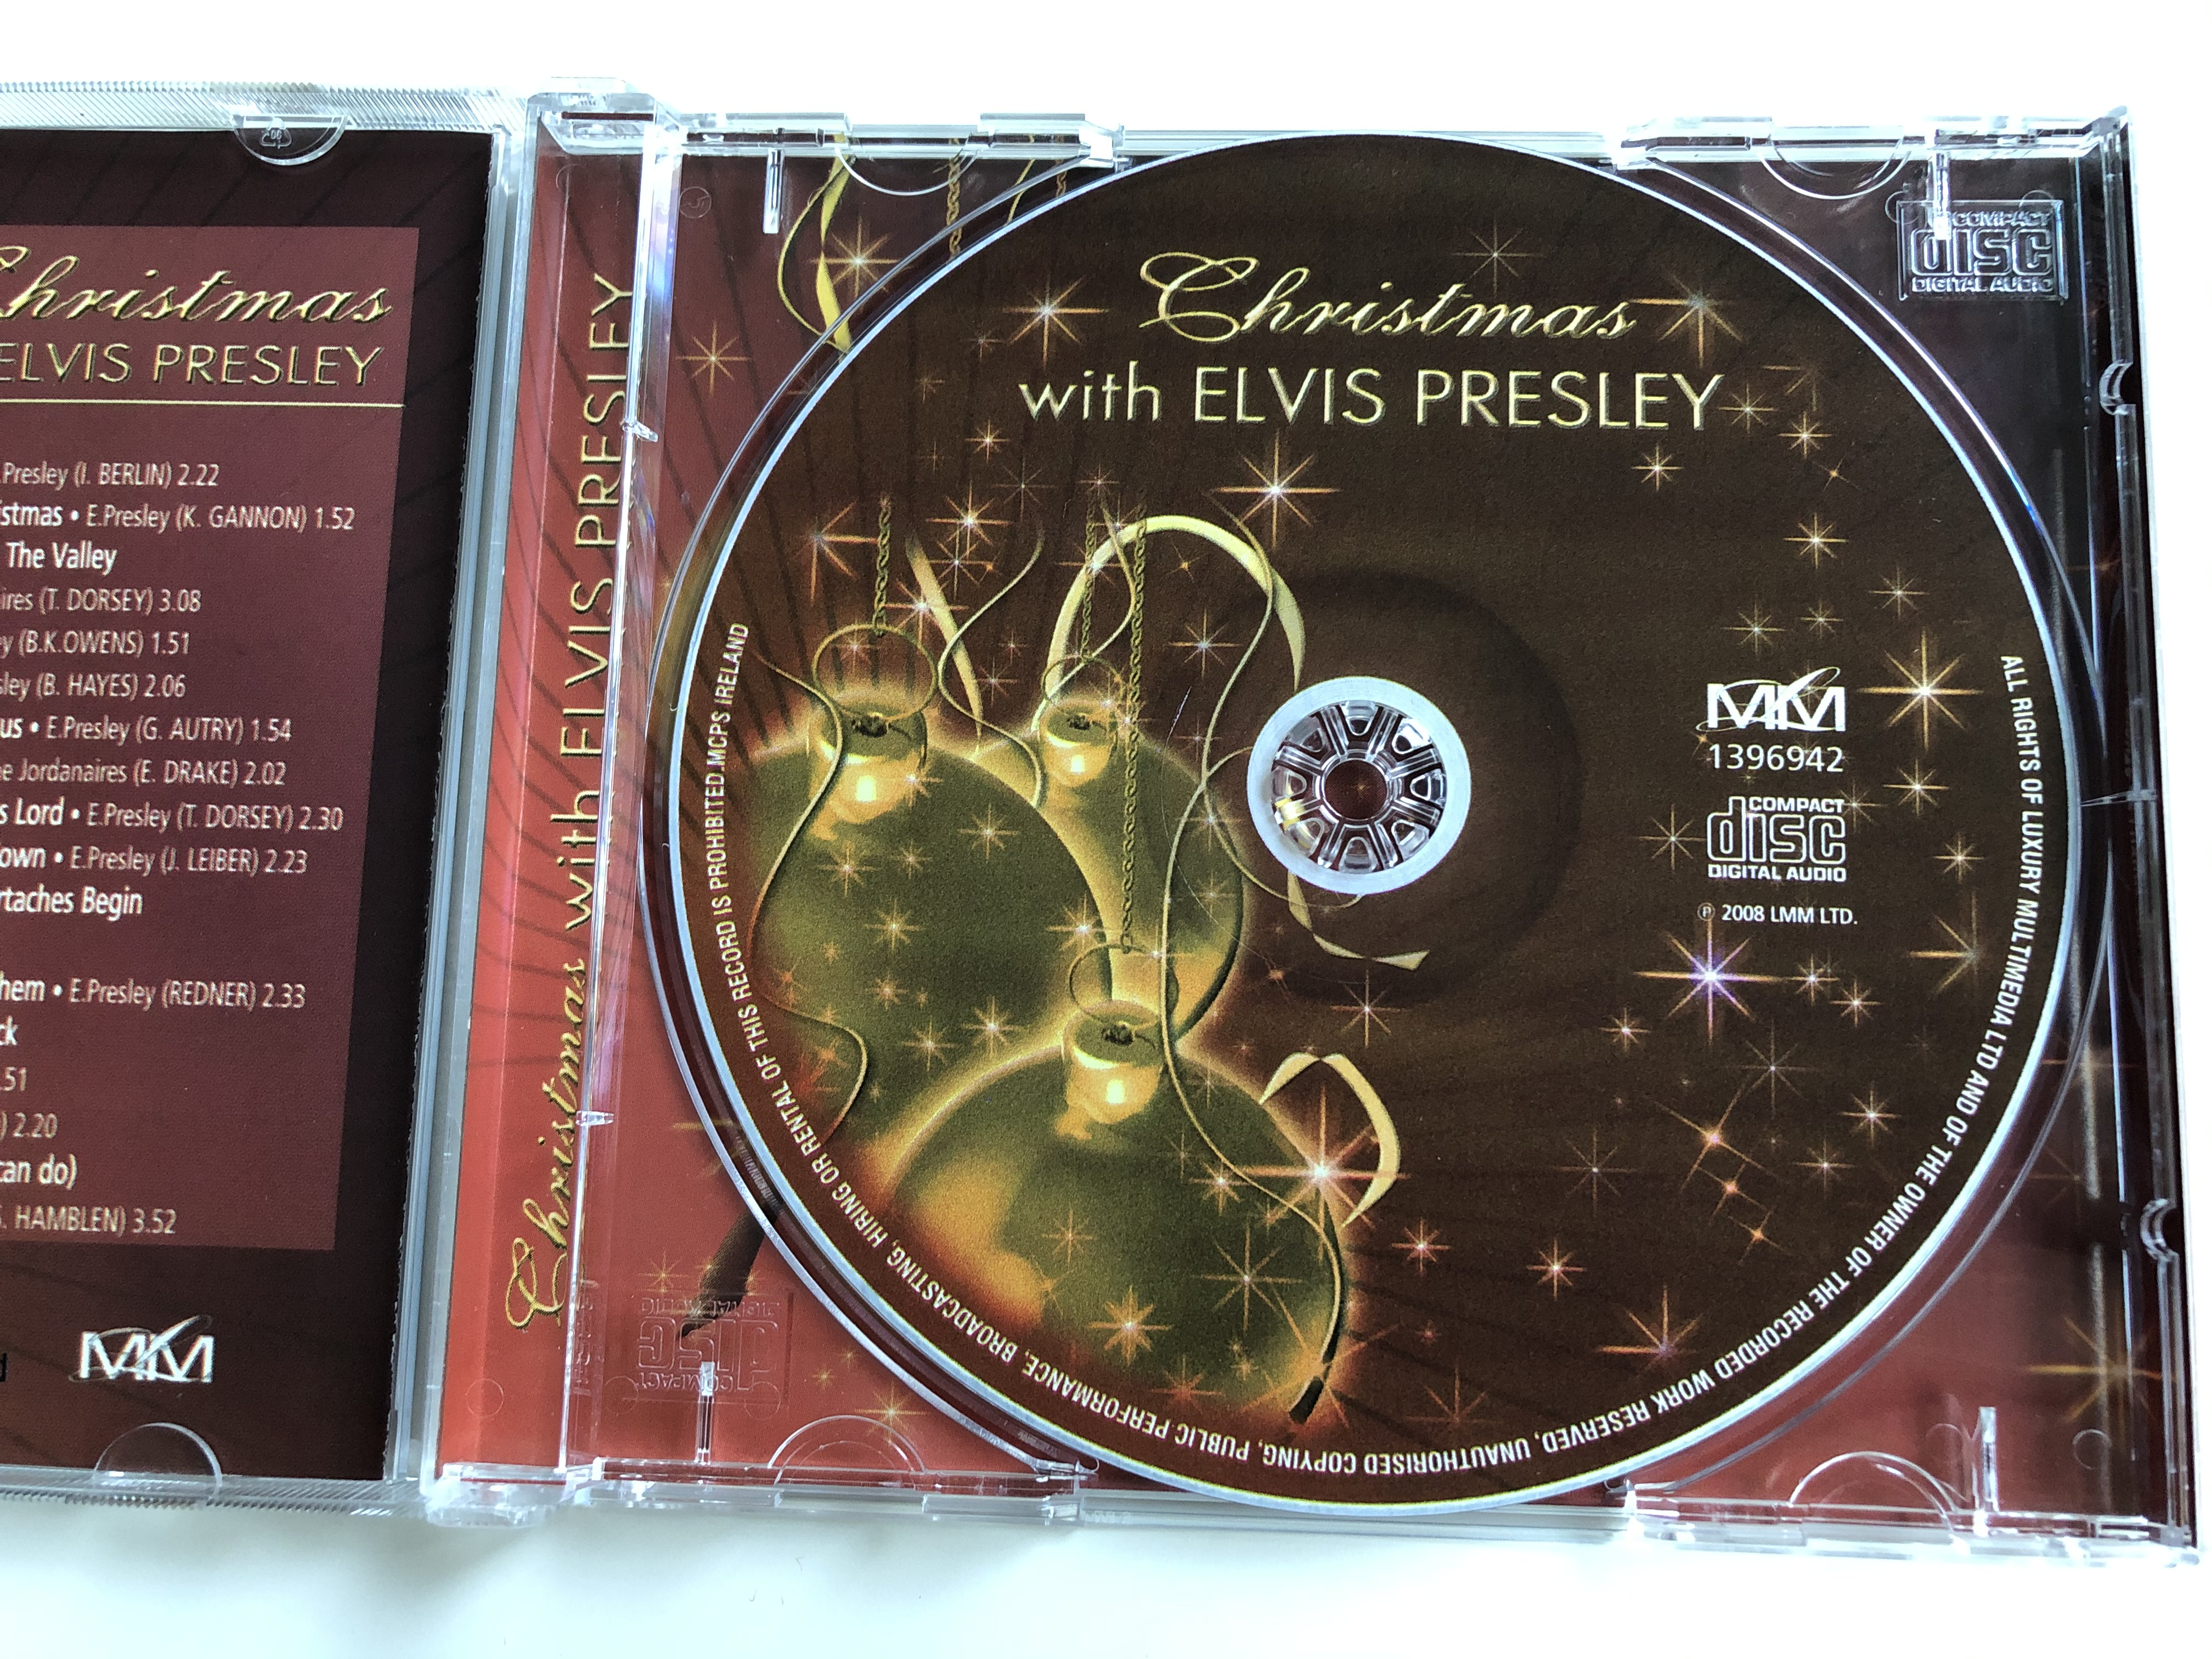 christmas-with-elvis-presley-white-christmas-santa-claus-is-back-in-town-silent-night-lmm-audio-cd-2008-1396942-3-.jpg